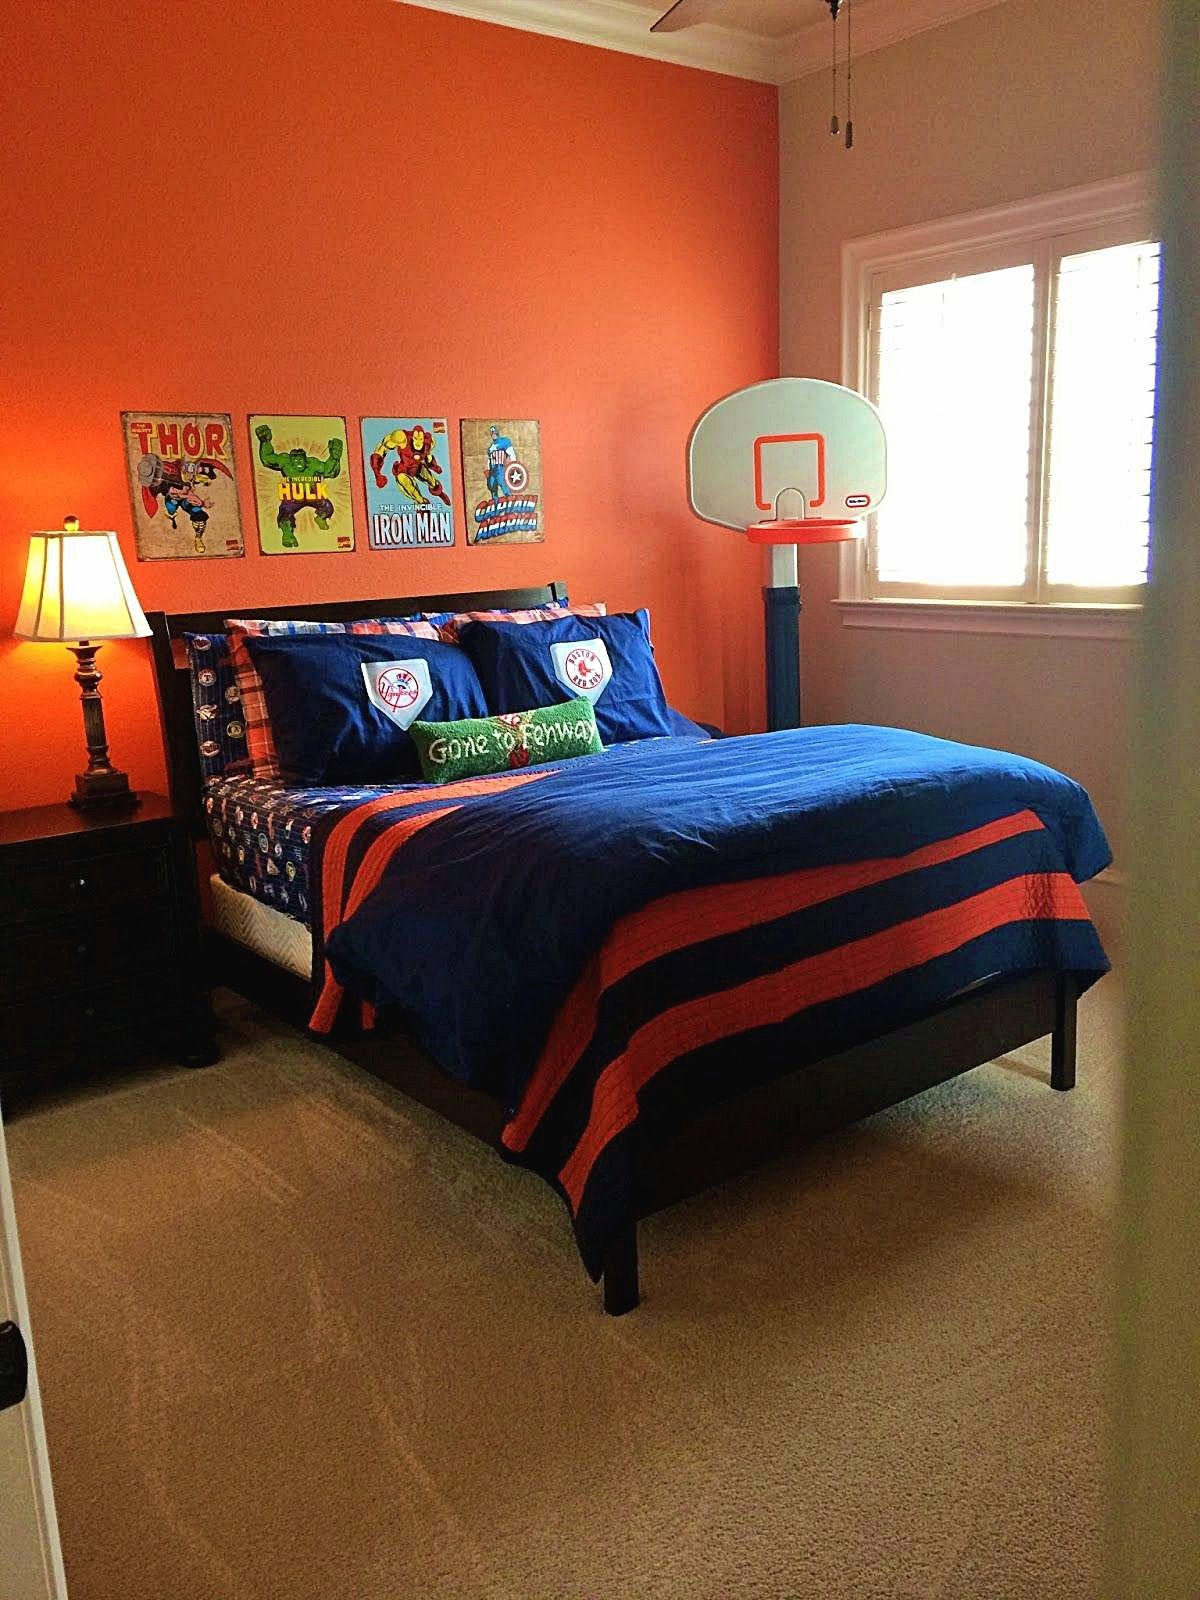 Boys bedroom stuff and decor that grows with your child